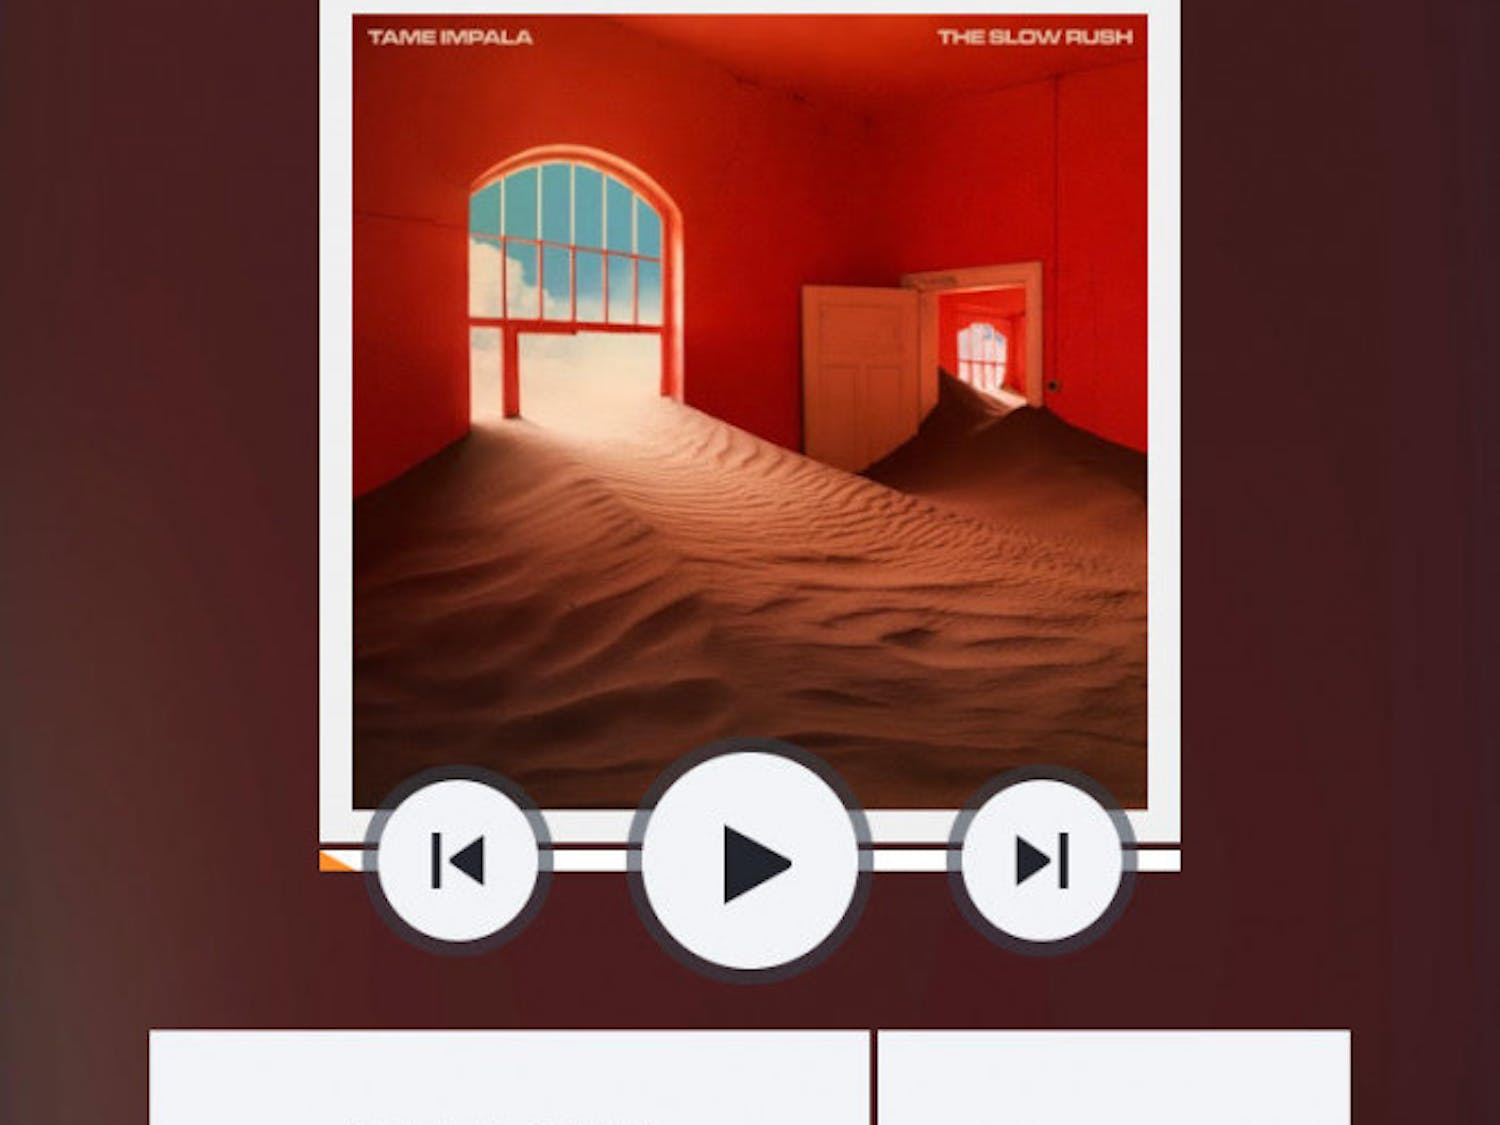 """Tame Impala's fourth album, """"The Slow Rush,"""" ruminates on the passage of time, Parker's disillusionment with his newfound fame and his troubled relationship with his late father."""